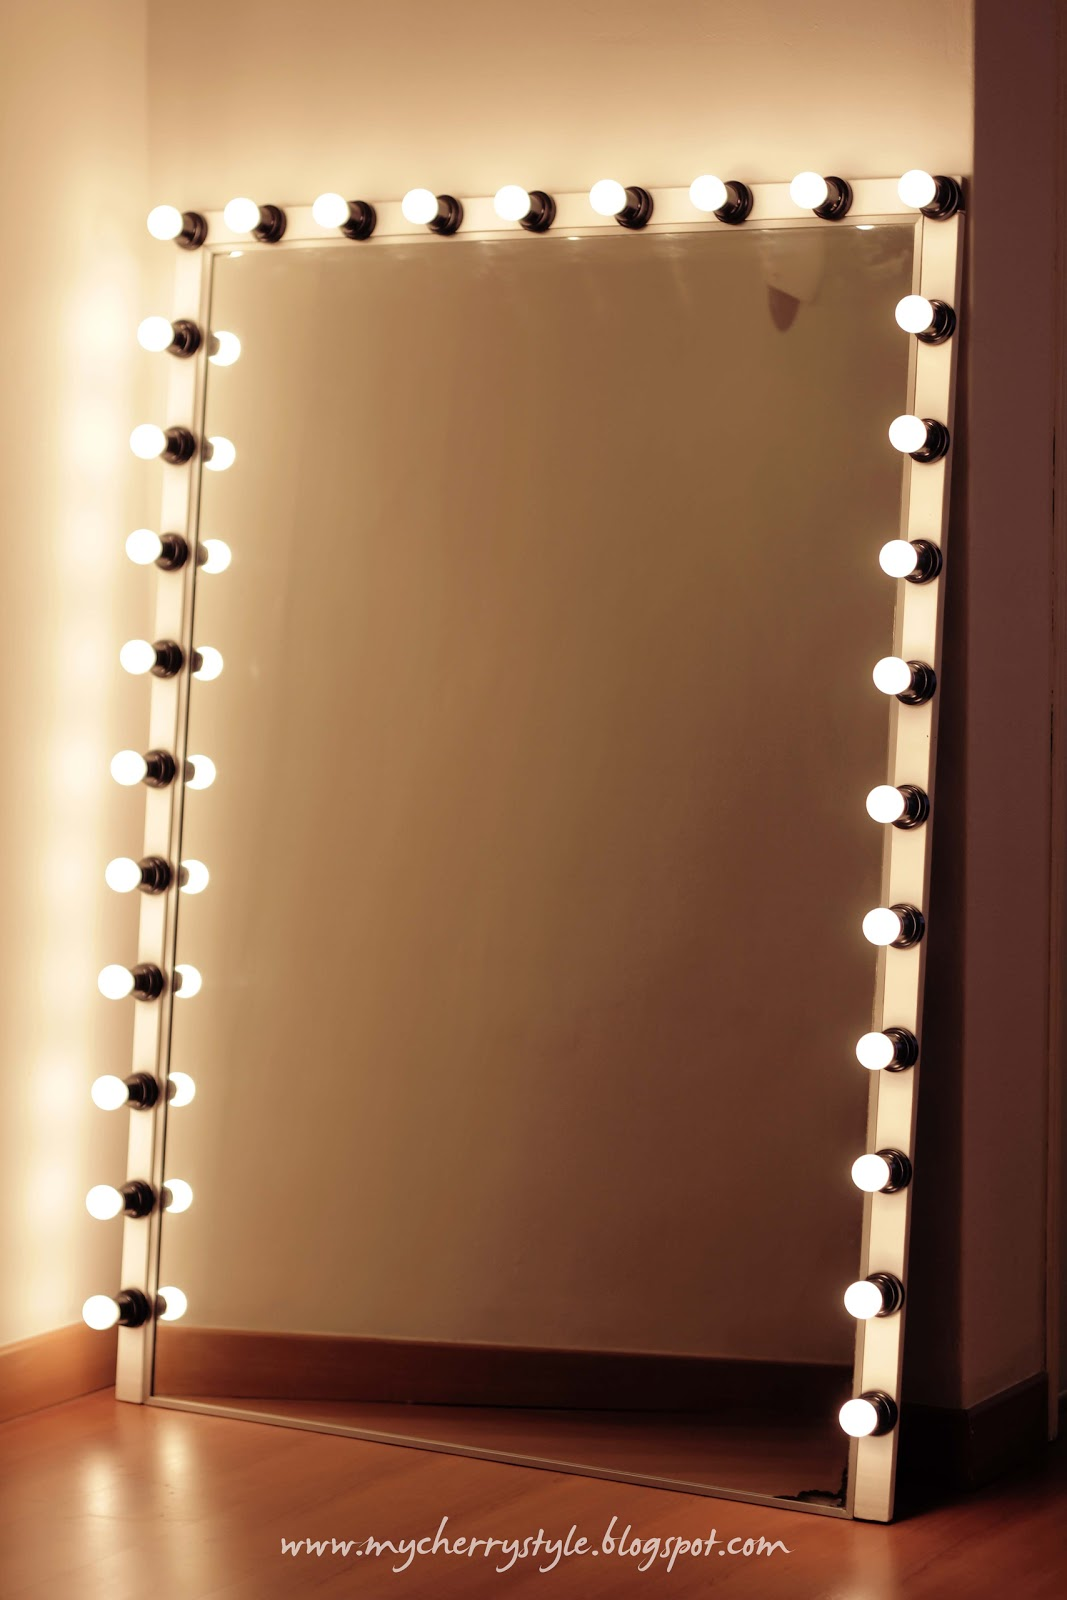 Diy Hollywood Style Mirror With Lights Tutorial From Scratch For